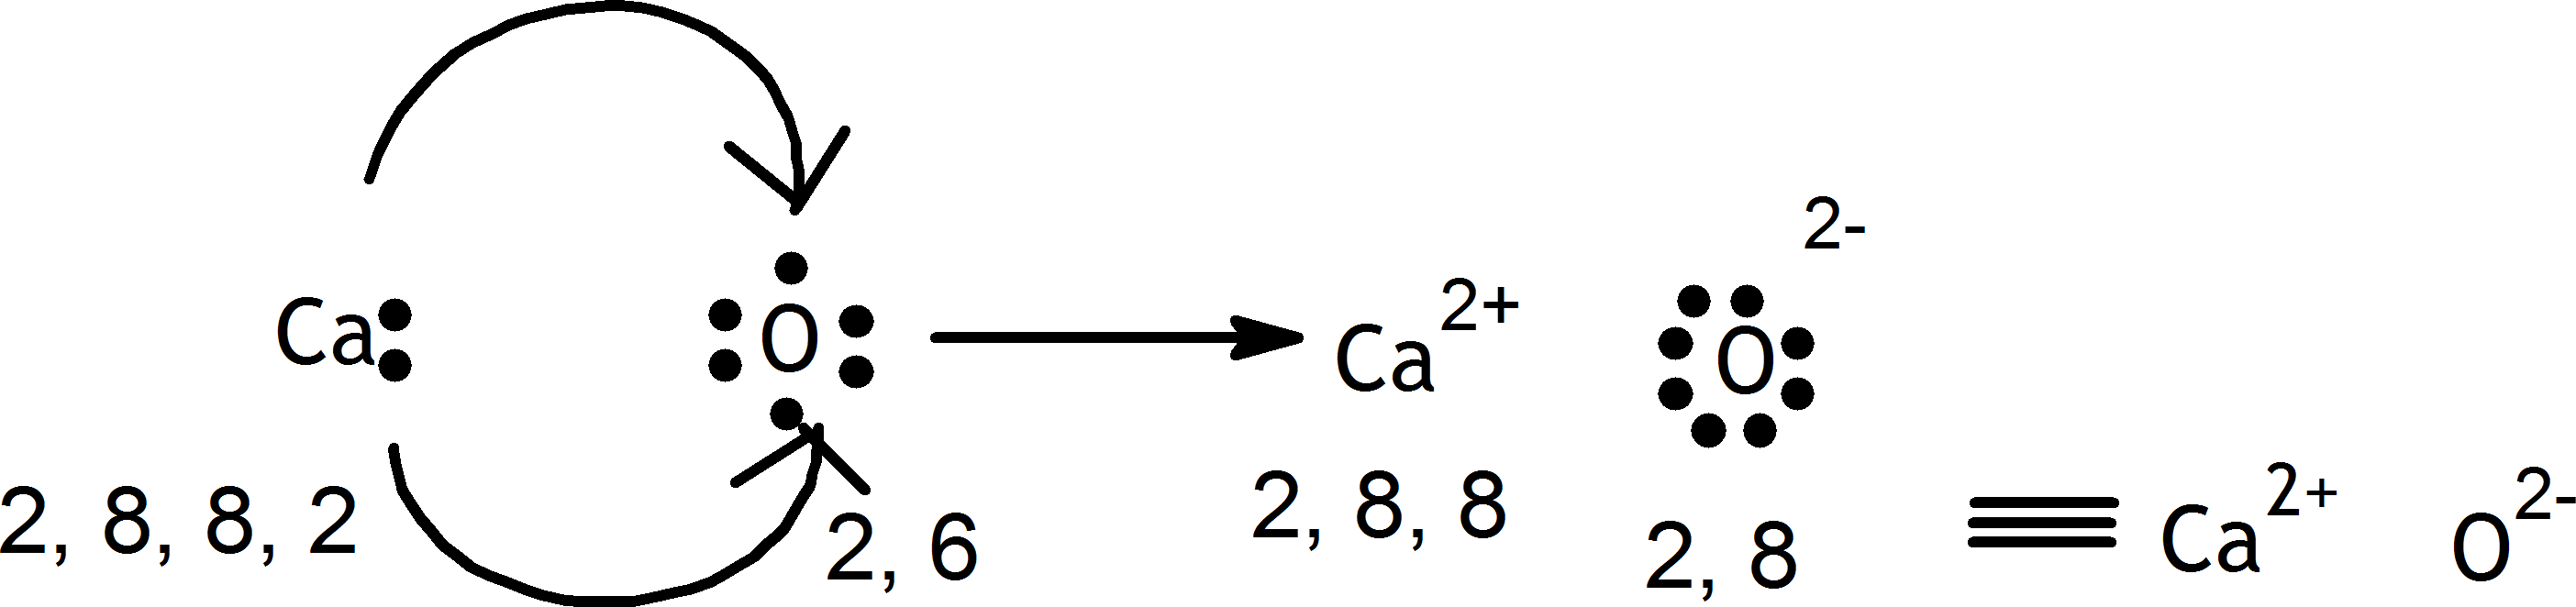 Image showing electron transfer of Ca and O.